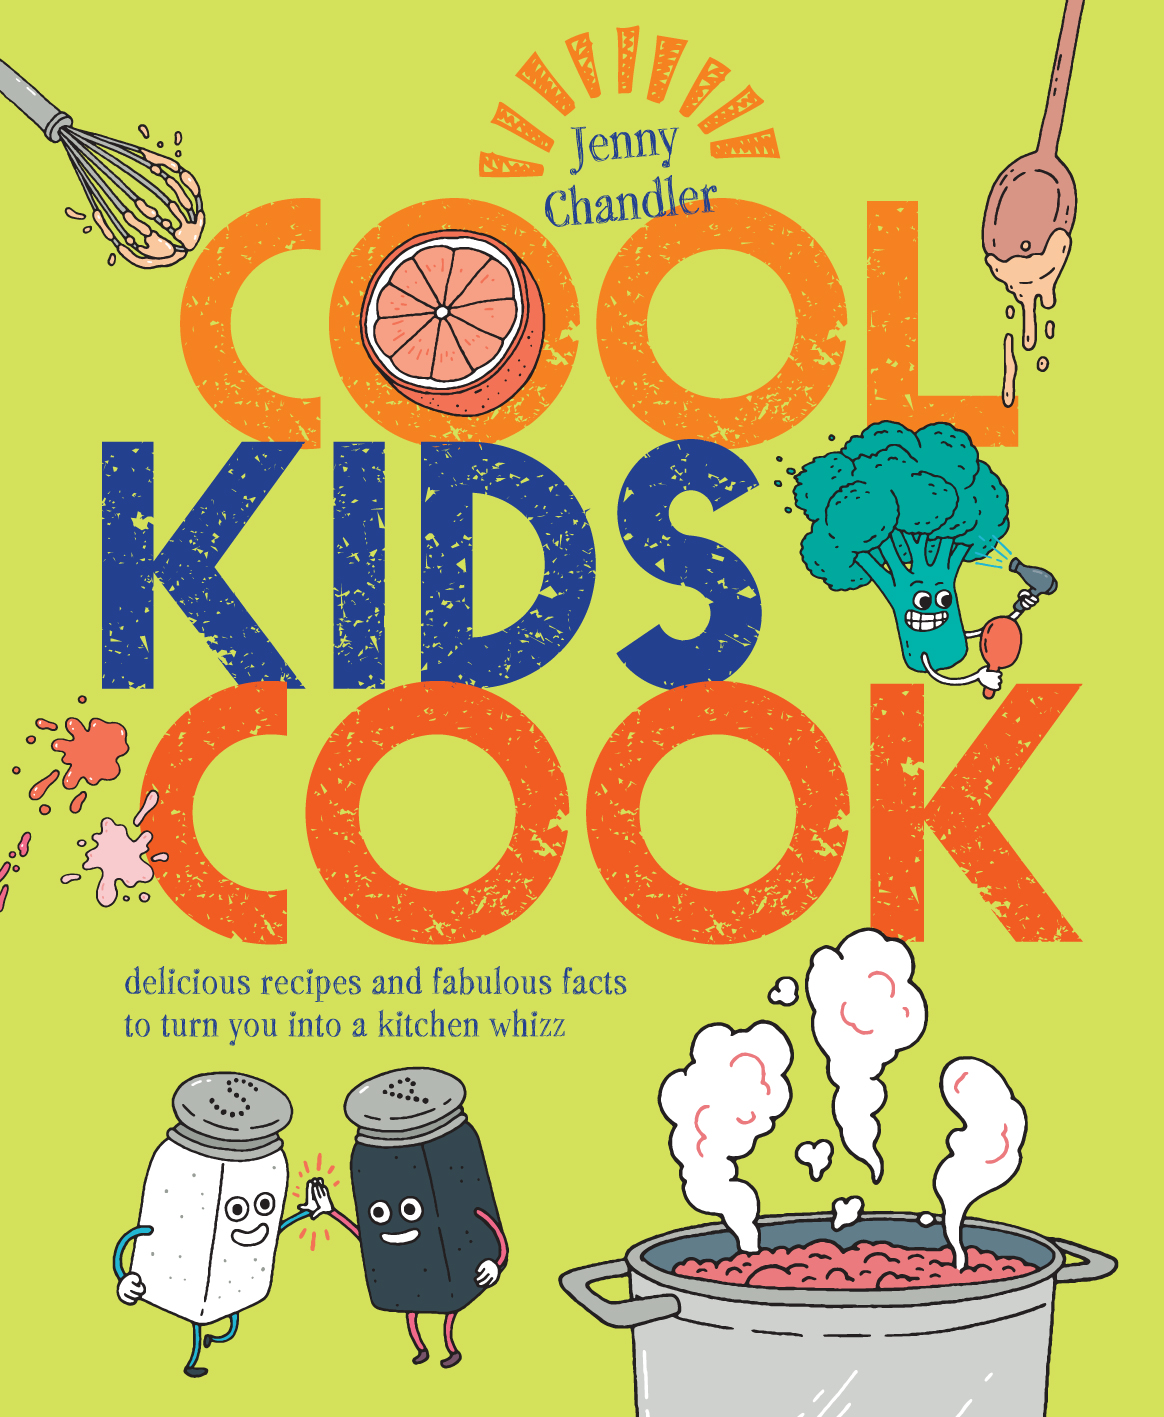 Cool Kids Cook, Jenny Chandler May 2016